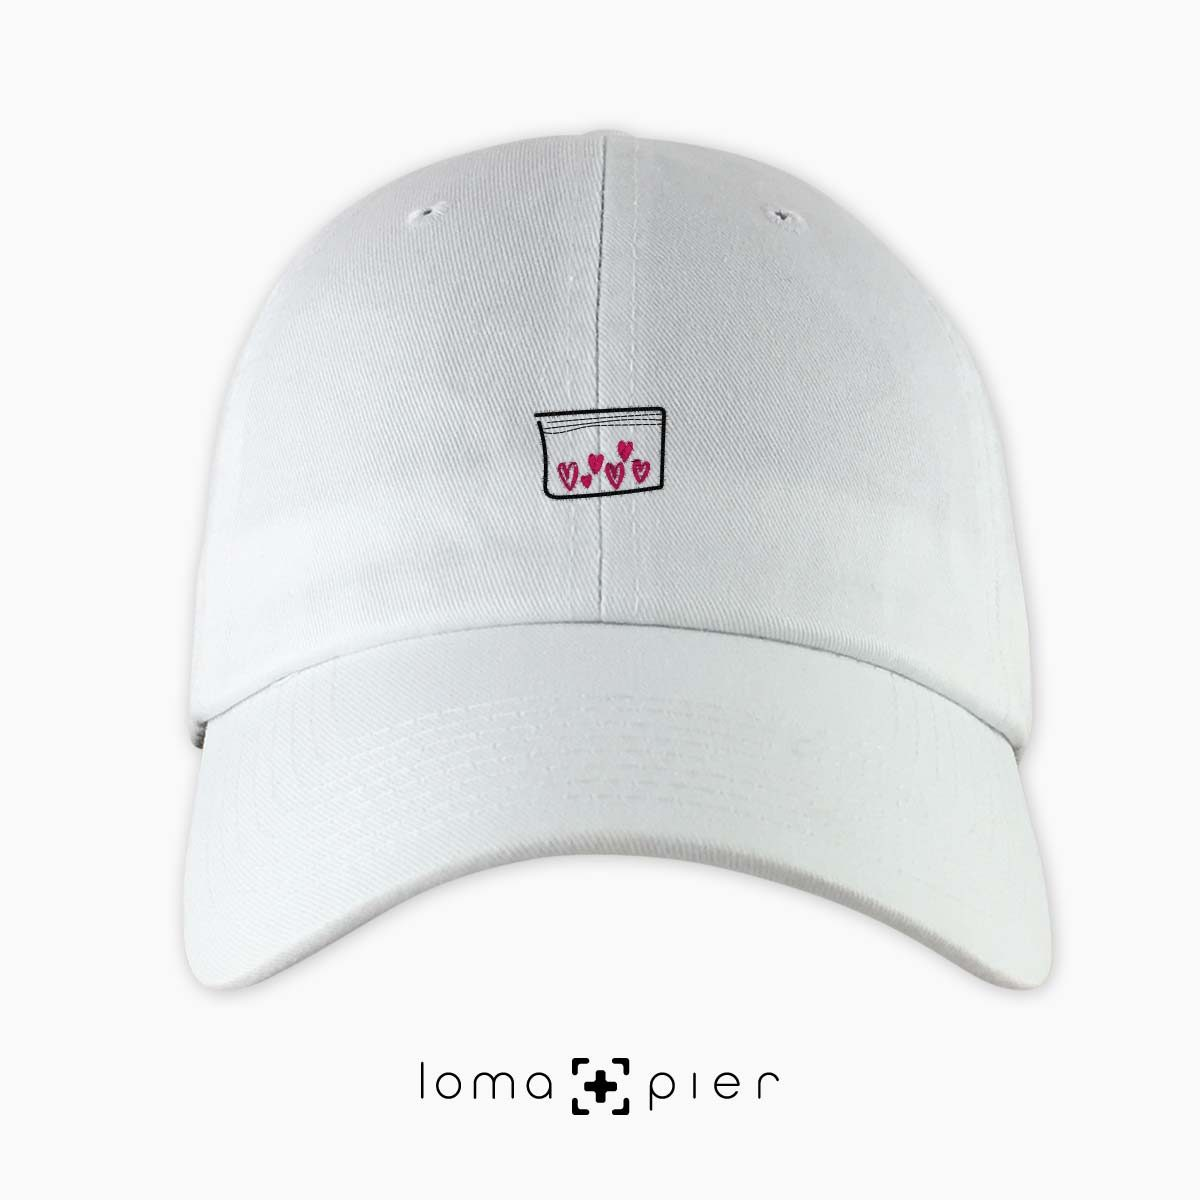 LOVE DRUG icon embroidered on a white unstructured dad hat with pink thread by loma+pier hat store made in the USA